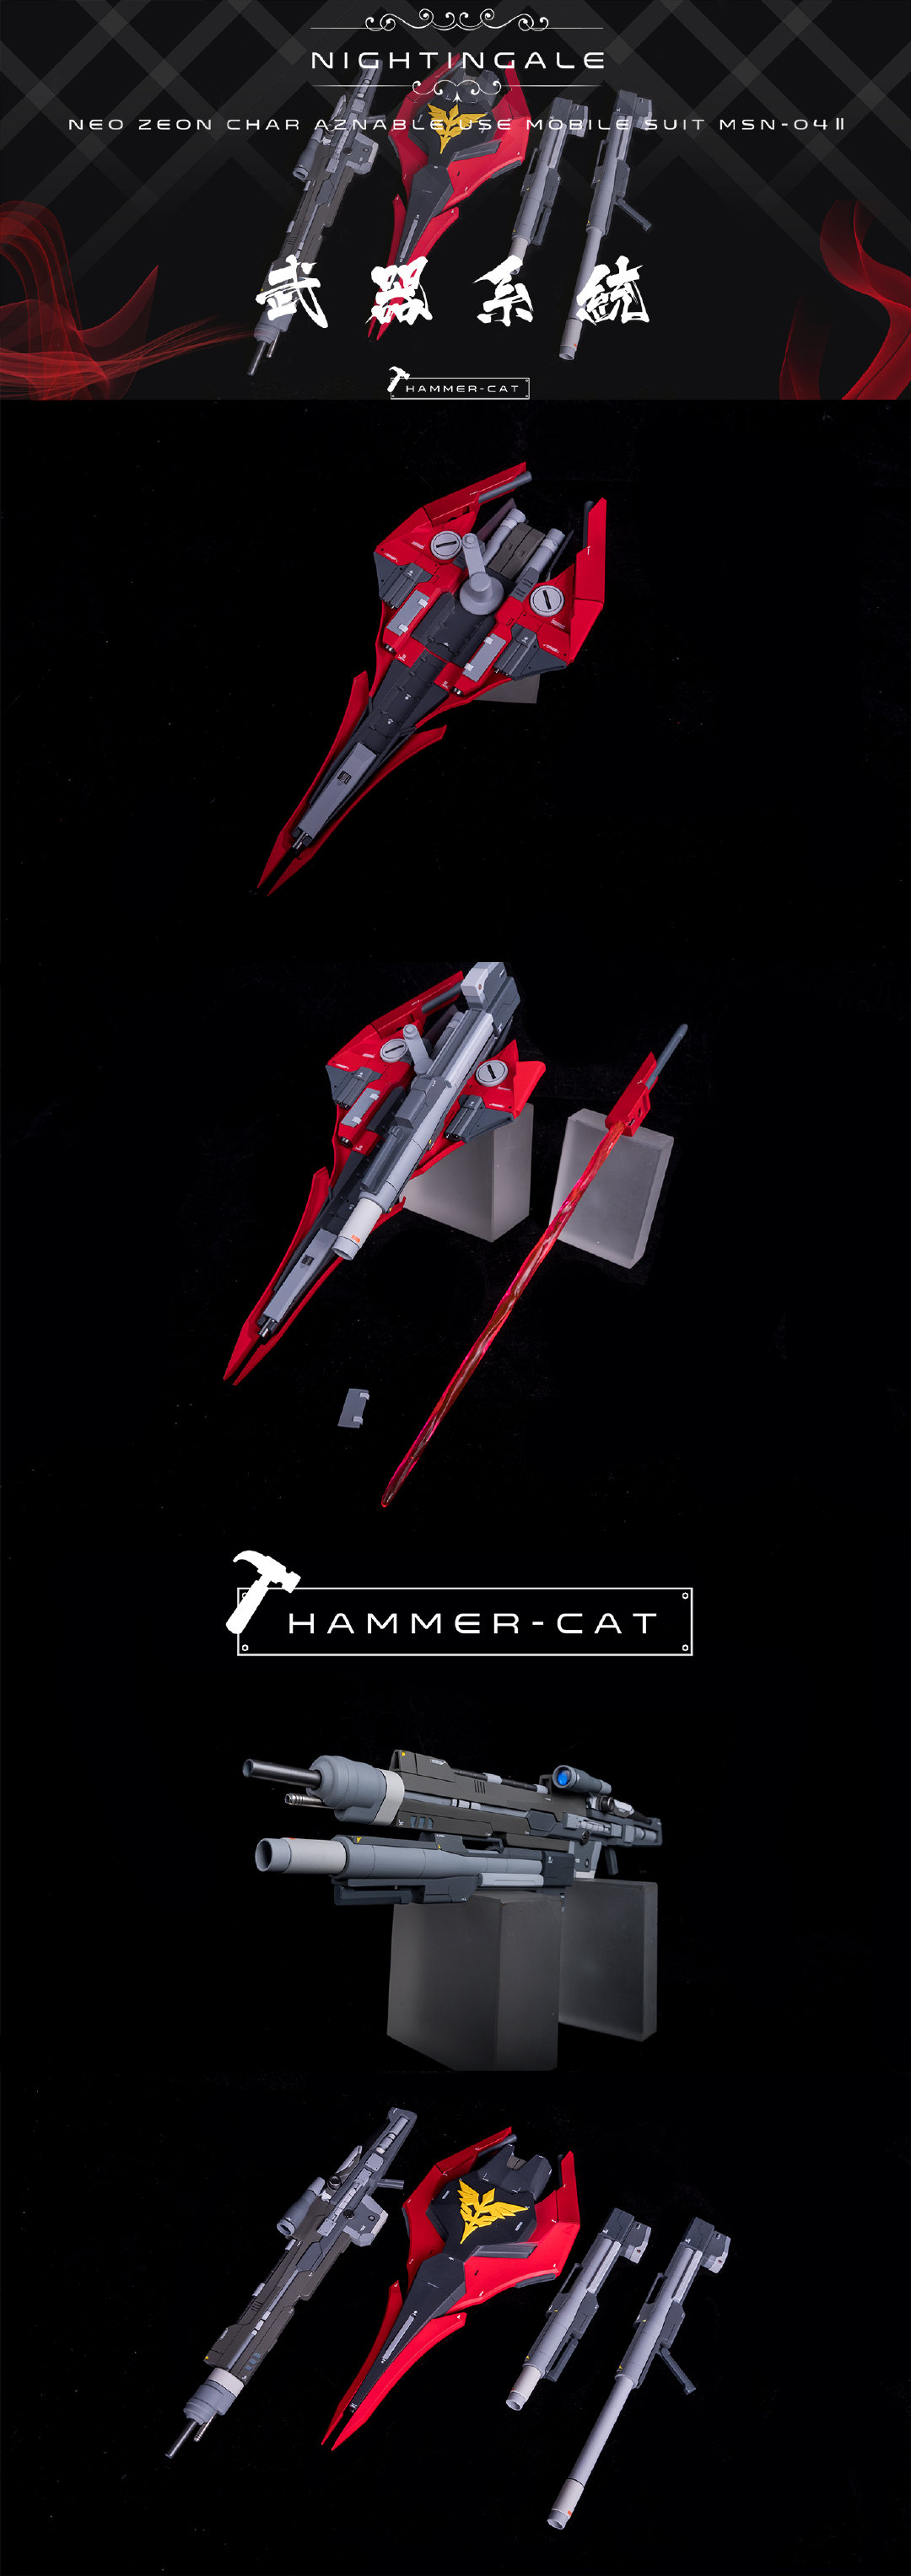 G503_G504_hammer_cat_nightingale_016.jpg